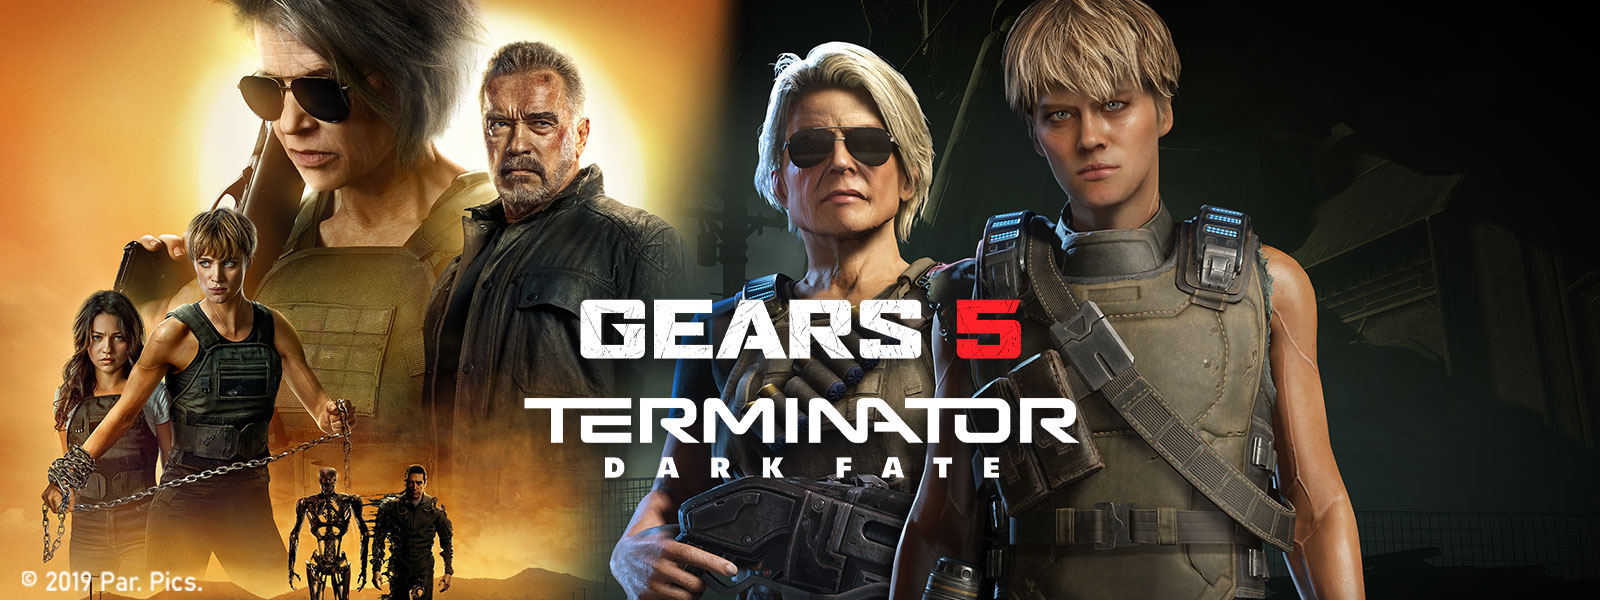 Gears 5, póster do filme Terminator Dark Fate com uma vista frontal das personagens do jogo Grace e Rev-9 Terminator